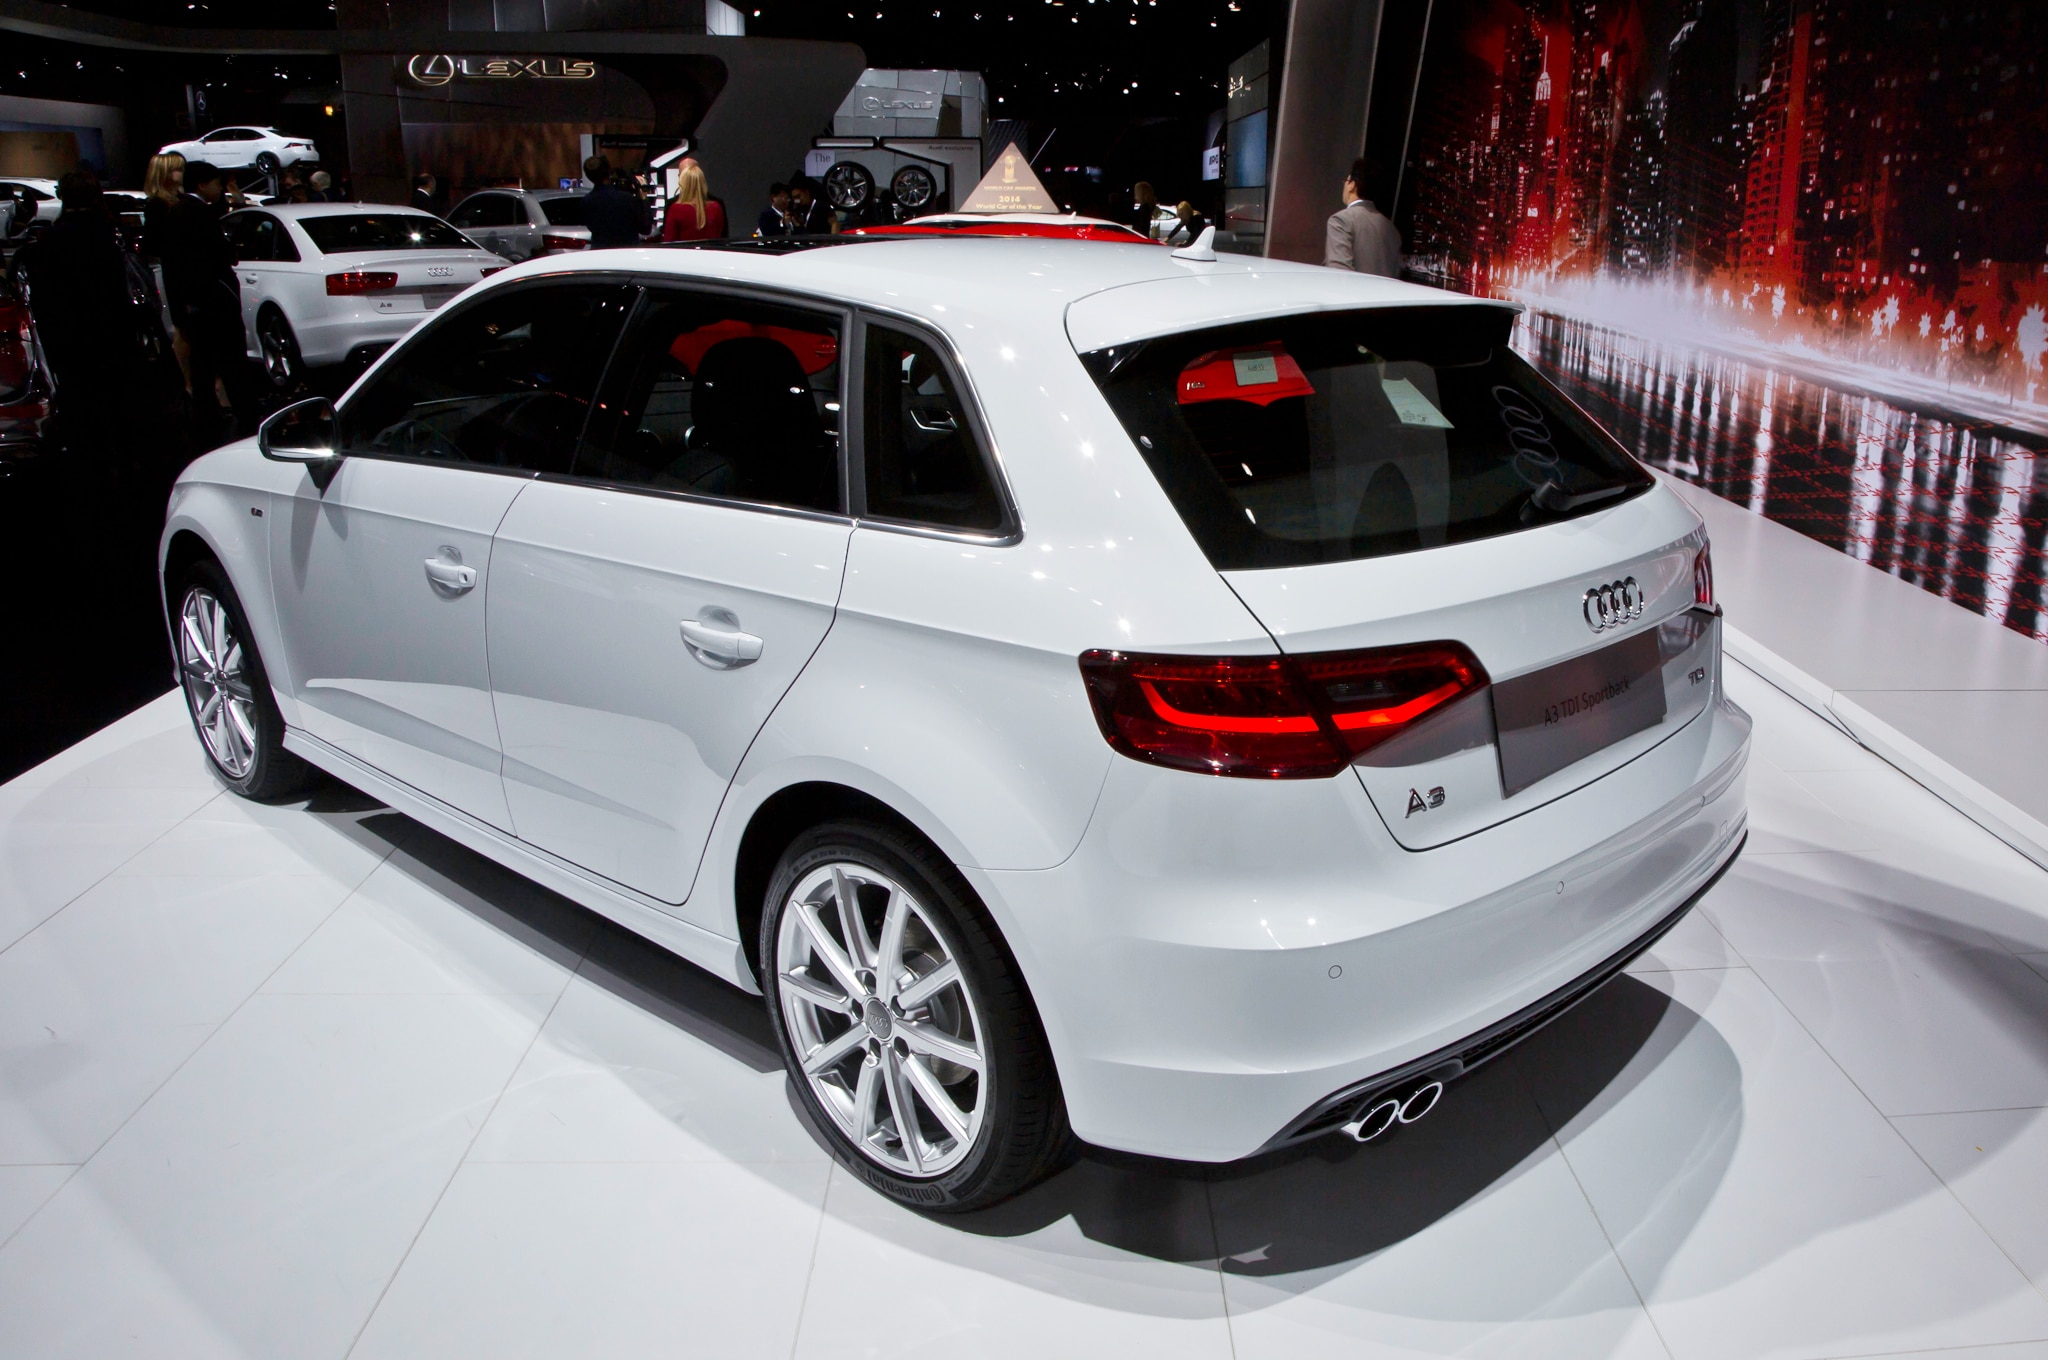 2016 Audi A3 TDI Hatchback Joins Lineup